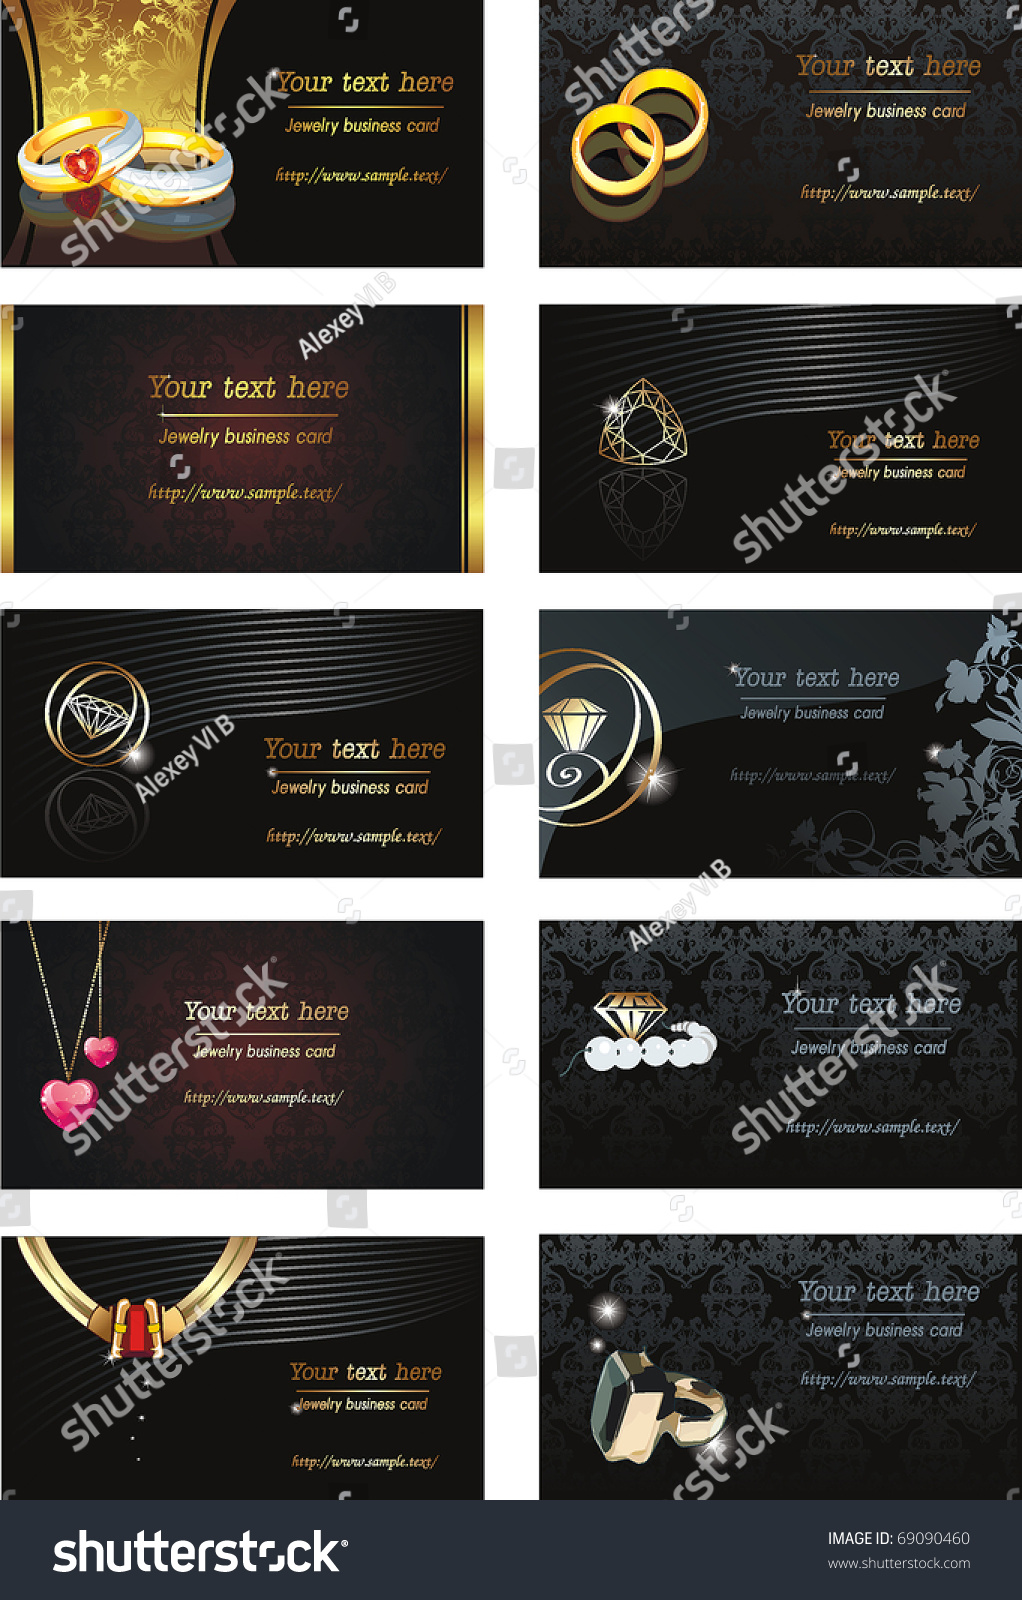 Vector Illustration Business Card Jewelry Beauty Stock Vector ...